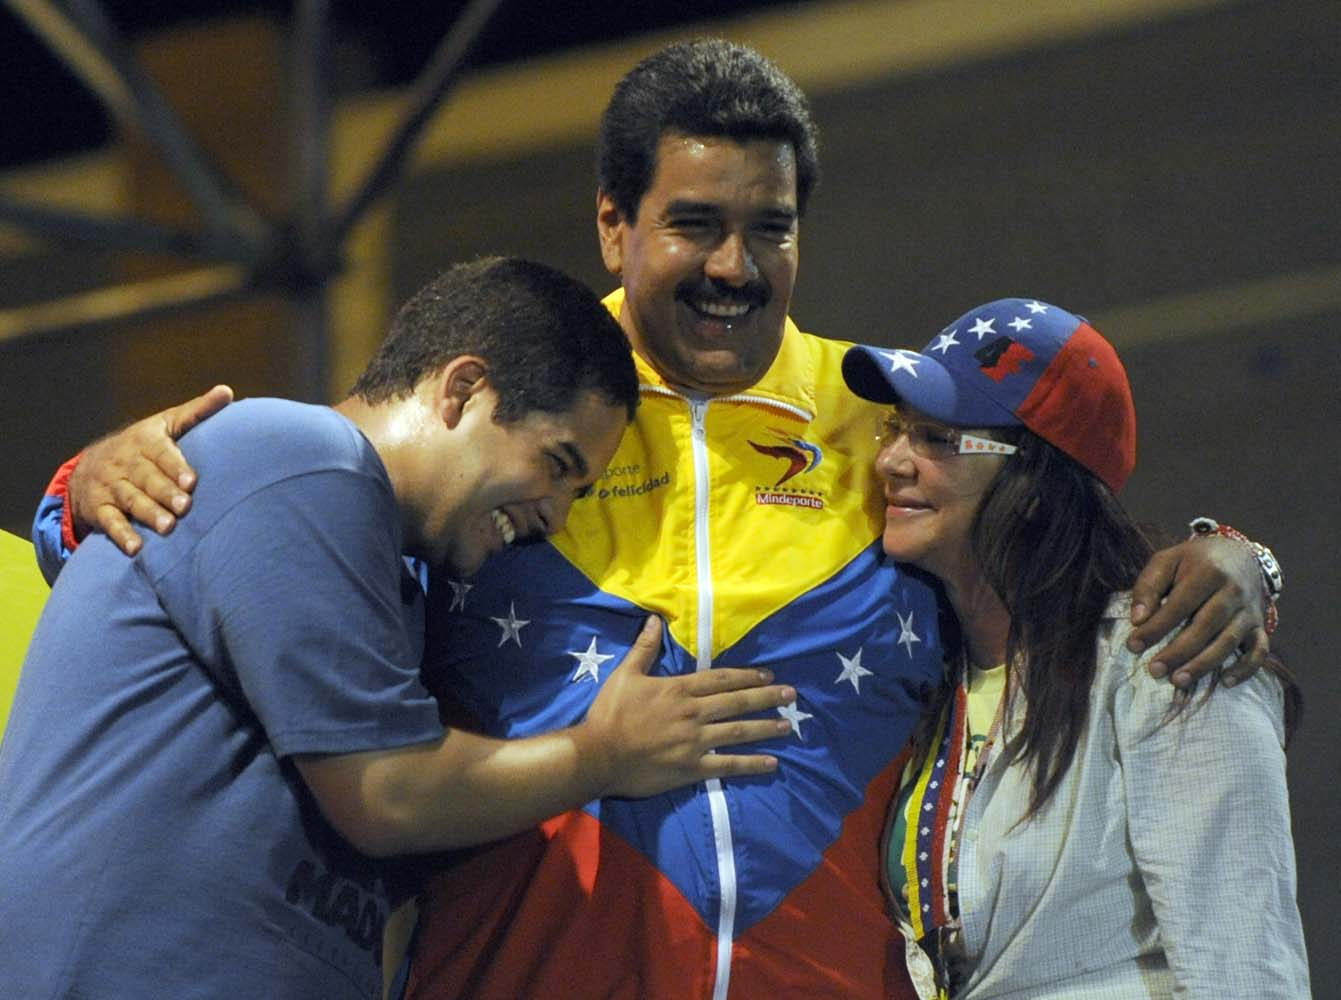 "(FILES) This file picture taken on April 6, 2013 shows Venezuelan acting President Nicolas Maduro (C) embracing his wife Cilia Flores (L) and son Nicolas Maduro during a campaign rally in Puerto Ordaz, Bolivar state, Venezuela. Nicolas Ernesto Maduro Guerra, ""Nicolasito"", the President's son is an economist and candidate to July 31, 2017 ""constituent assembly"". / AFP PHOTO / JUAN BARRETO"